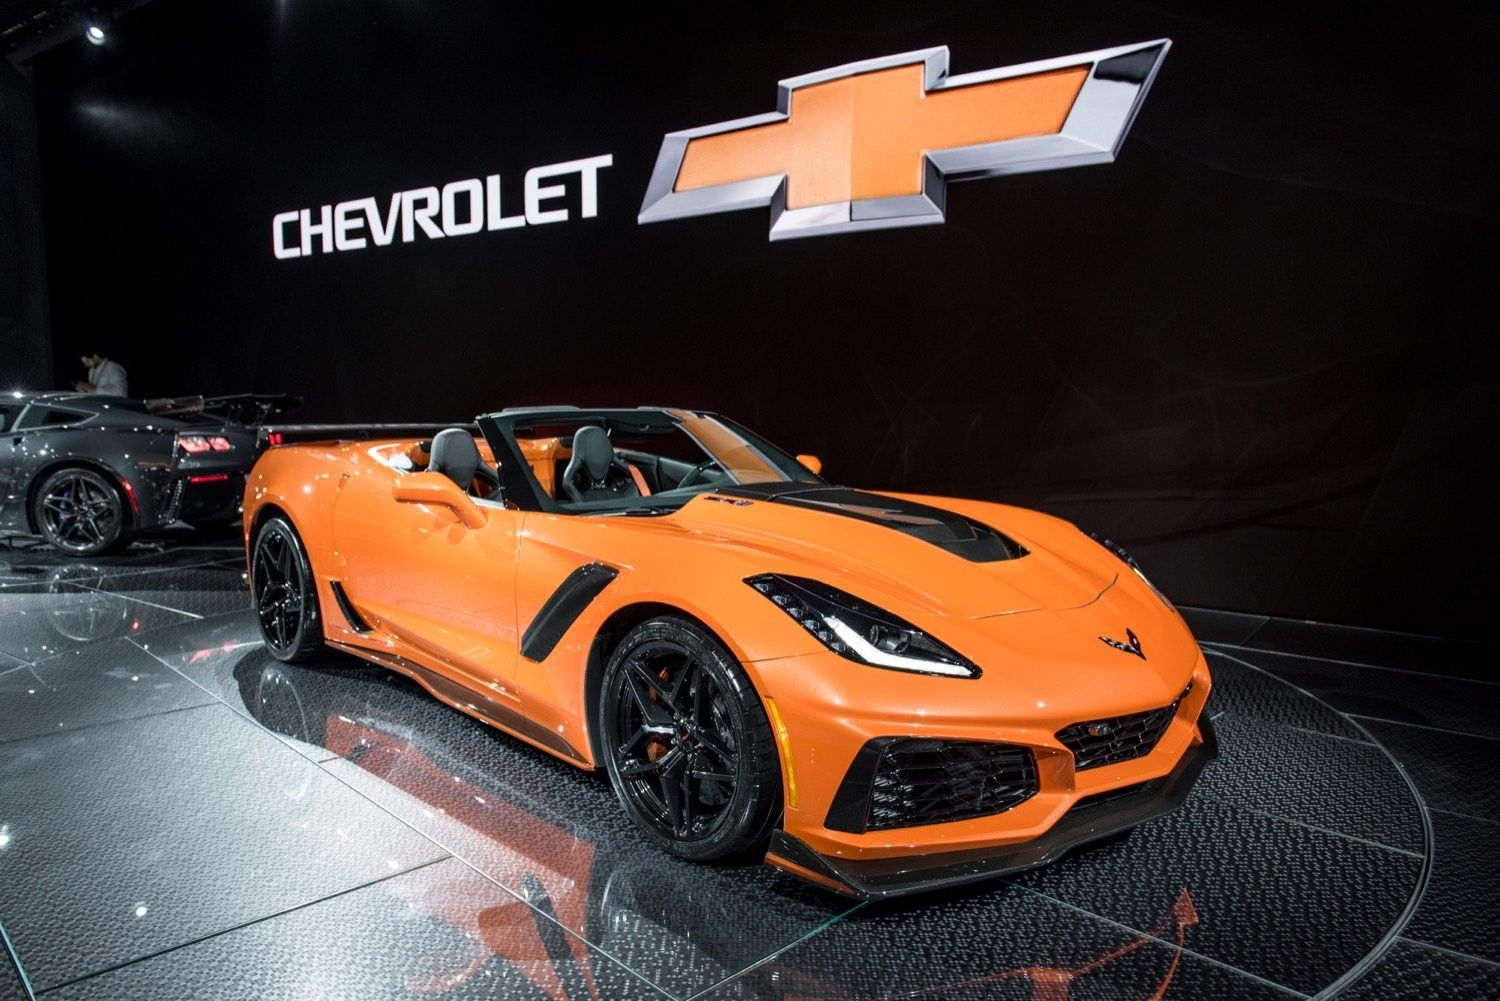 Photos of 2019 Chevrolet Corvette Zr1 Convertible